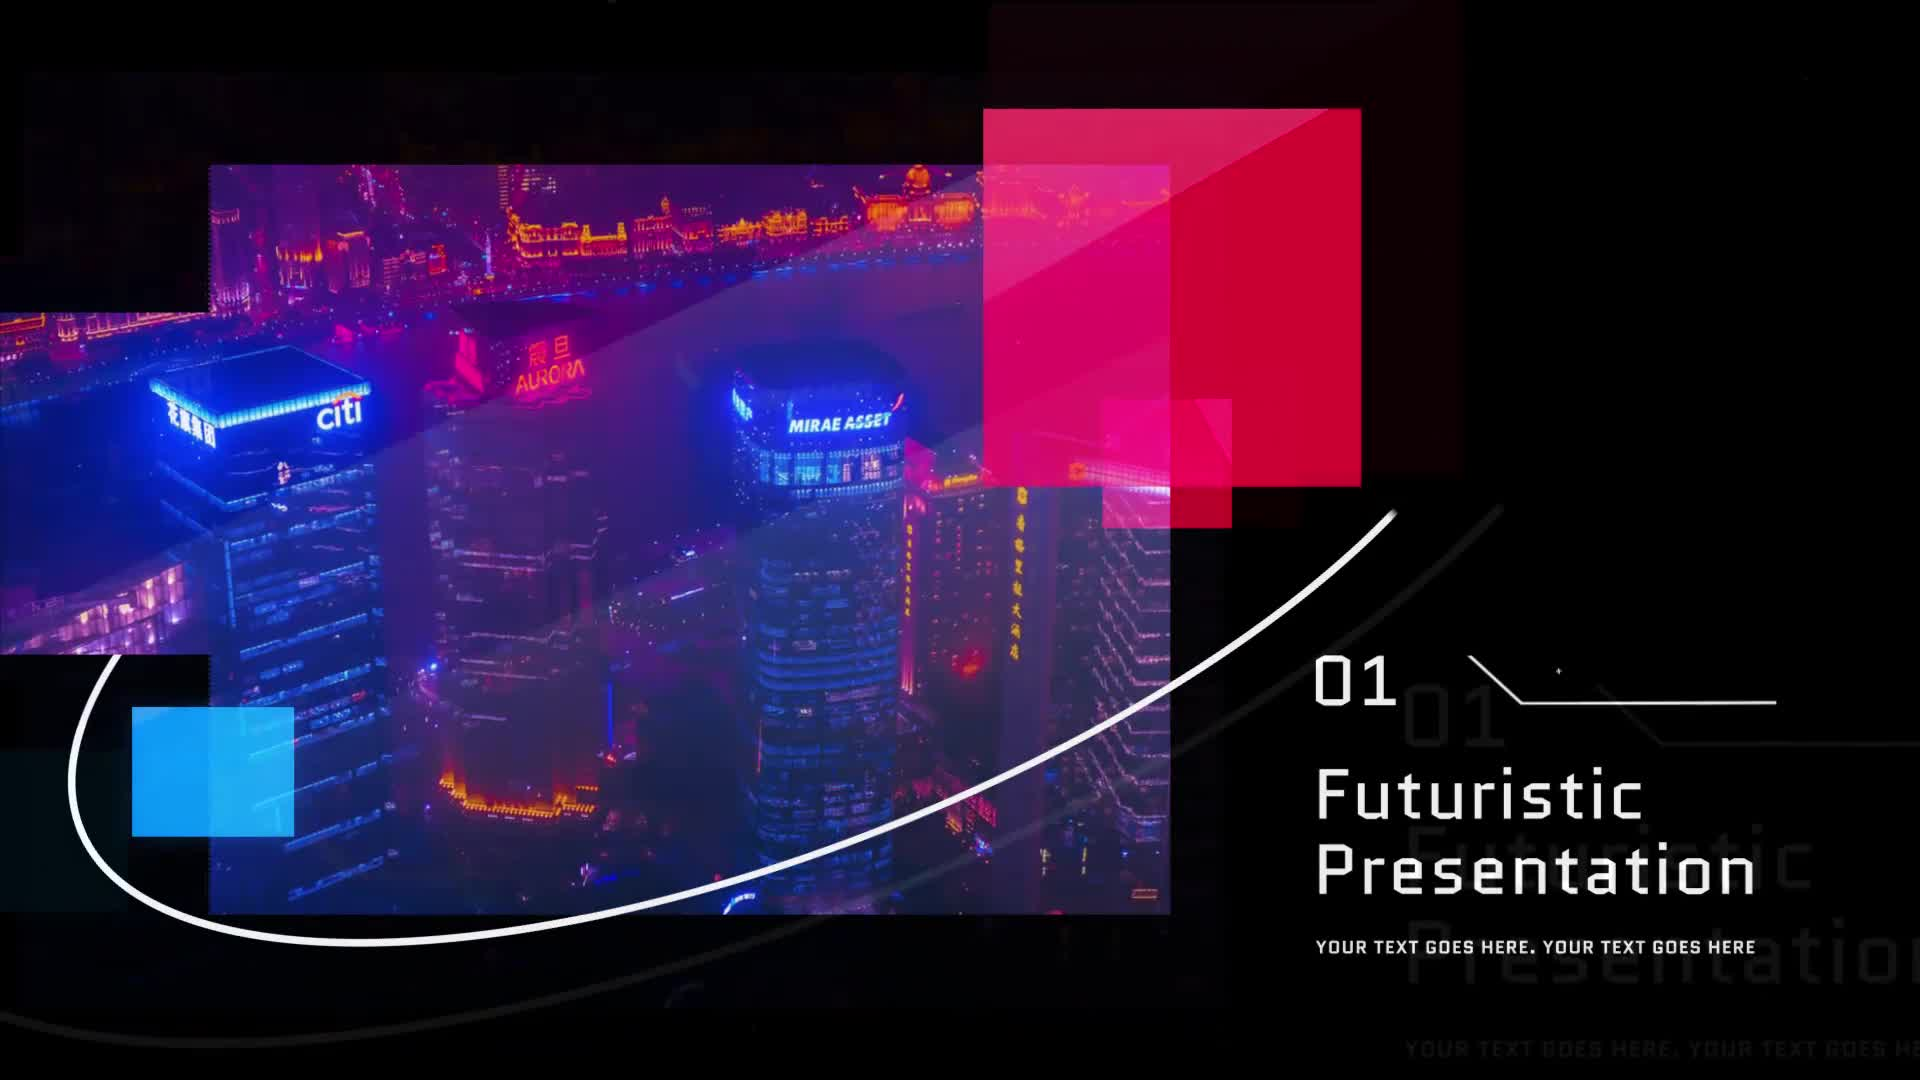 Futuristic Presentation Videohive 28976659 After Effects Image 1